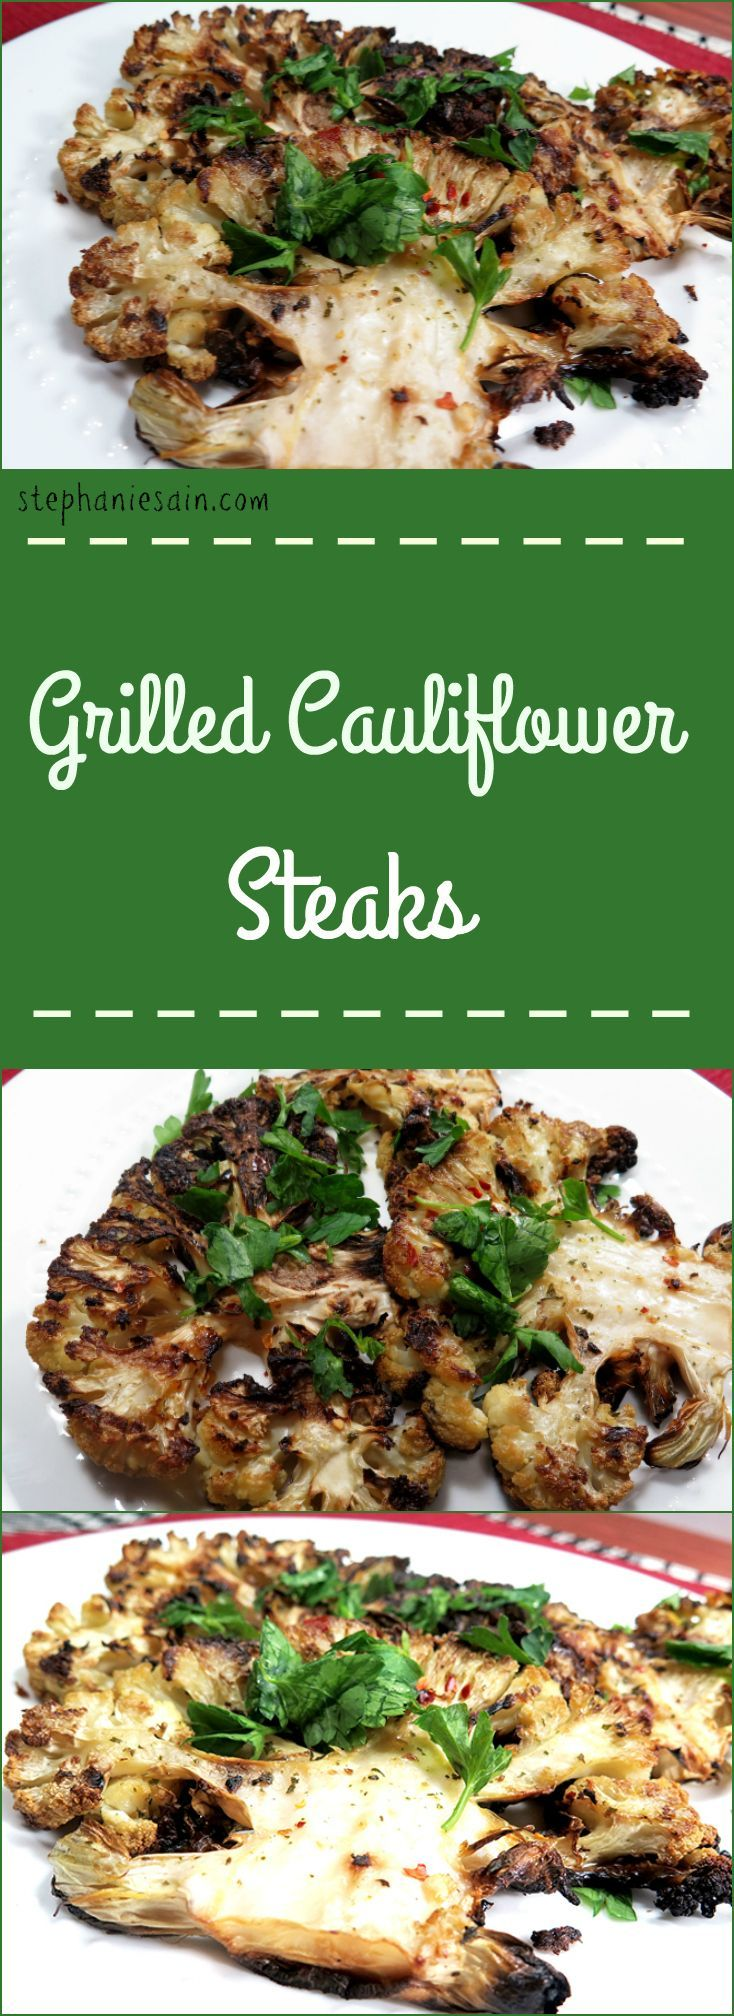 Grilled Cauliflower Steaks are a healthy, vegetarian option for your next cookout. Easy to prepare with only a few seasonings. Vegan & Gluten Free.